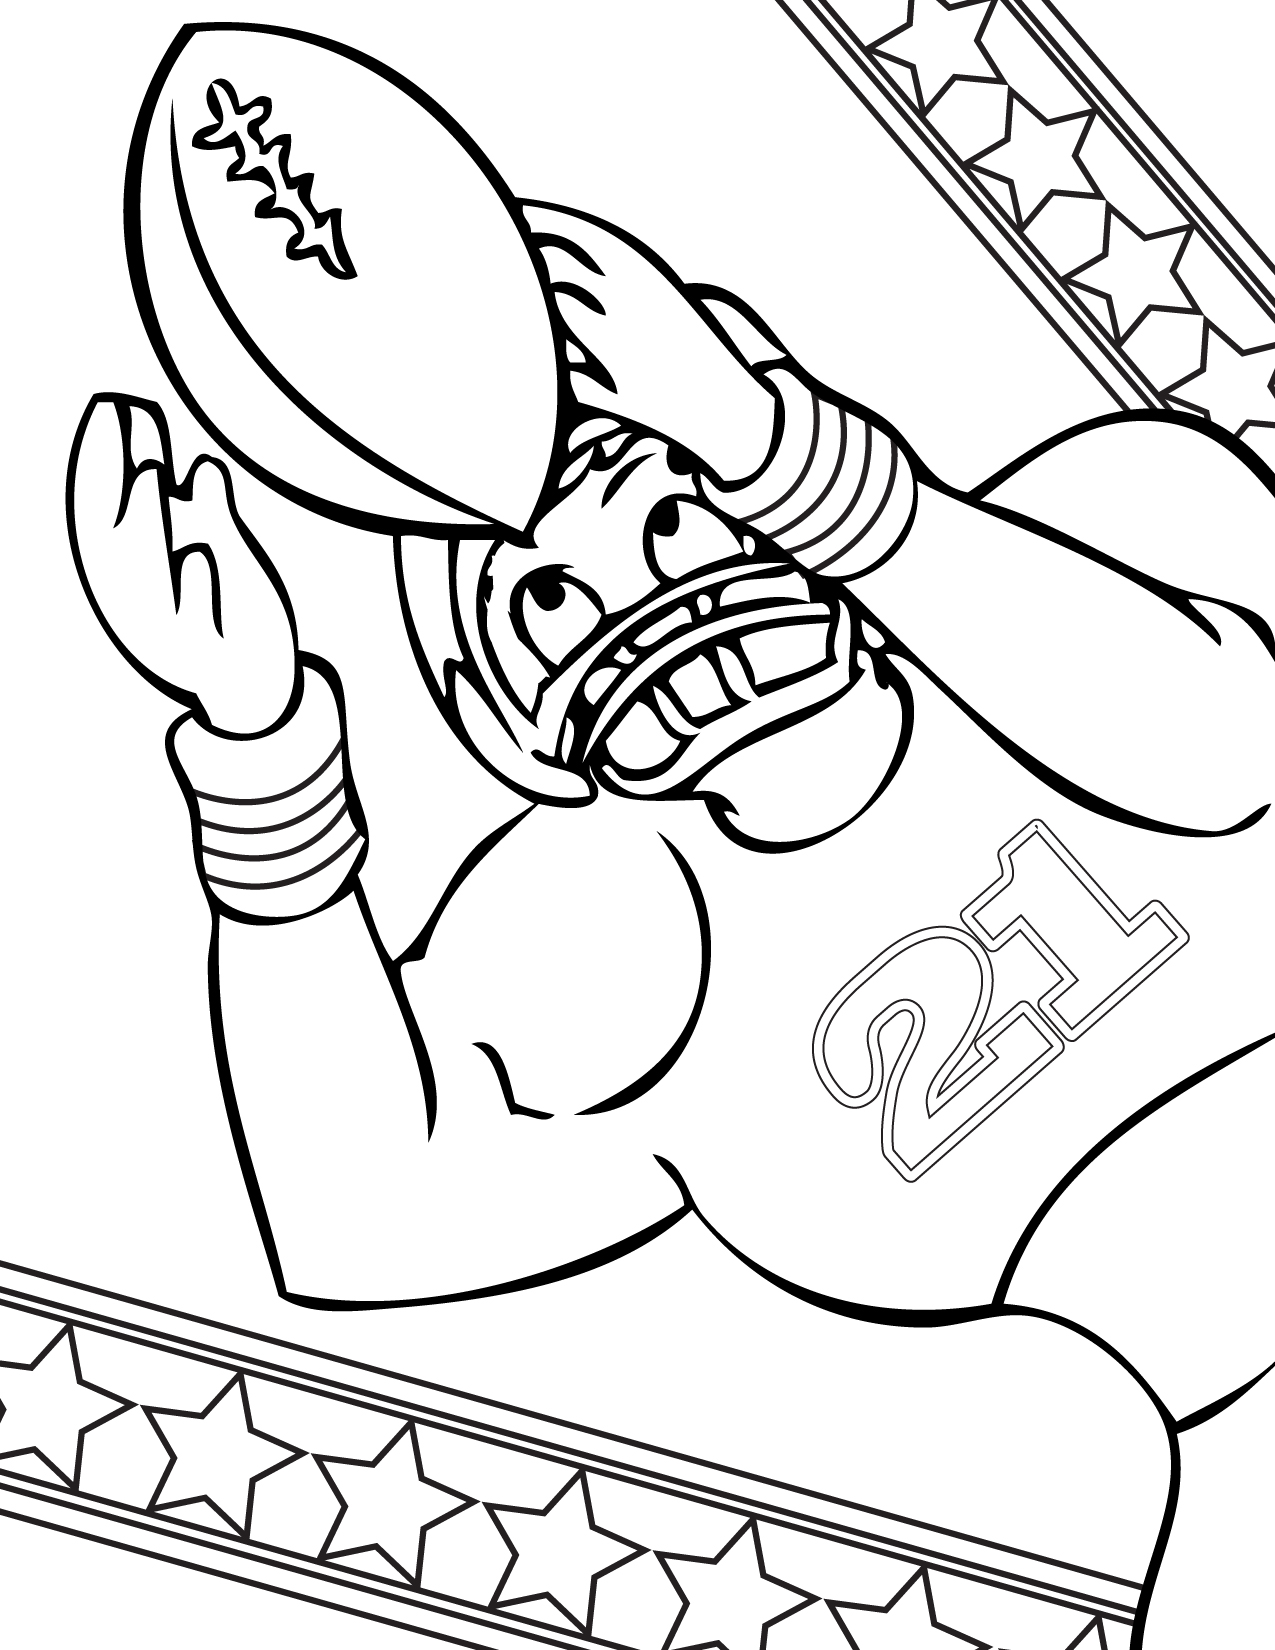 Sports Coloring Sheets To Print